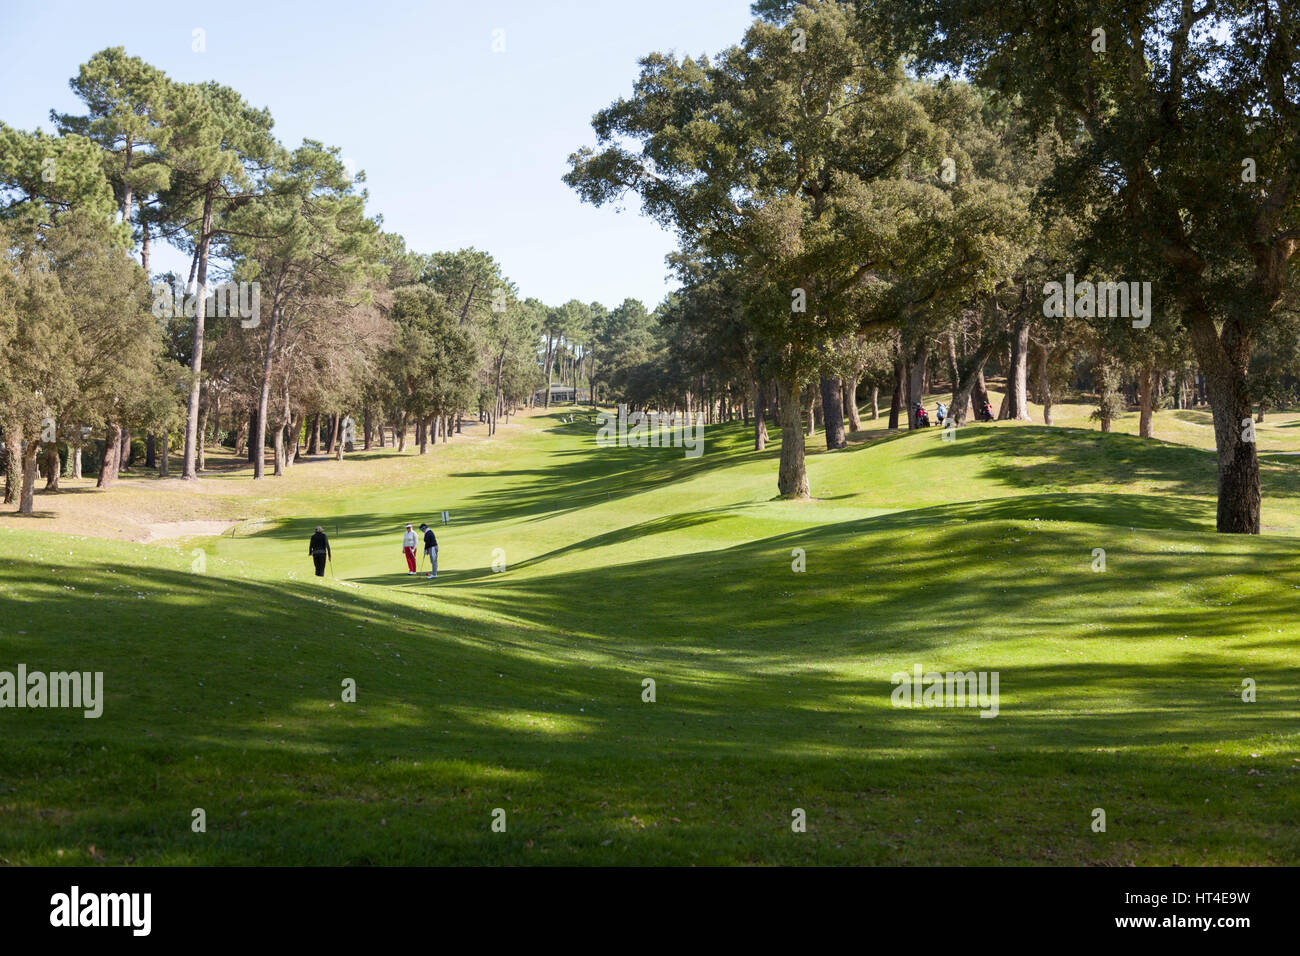 The 18 hole par 72 golf course of Seignosse (Landes - France). Hilly and constructed with lake and pond hazards, - Stock Image